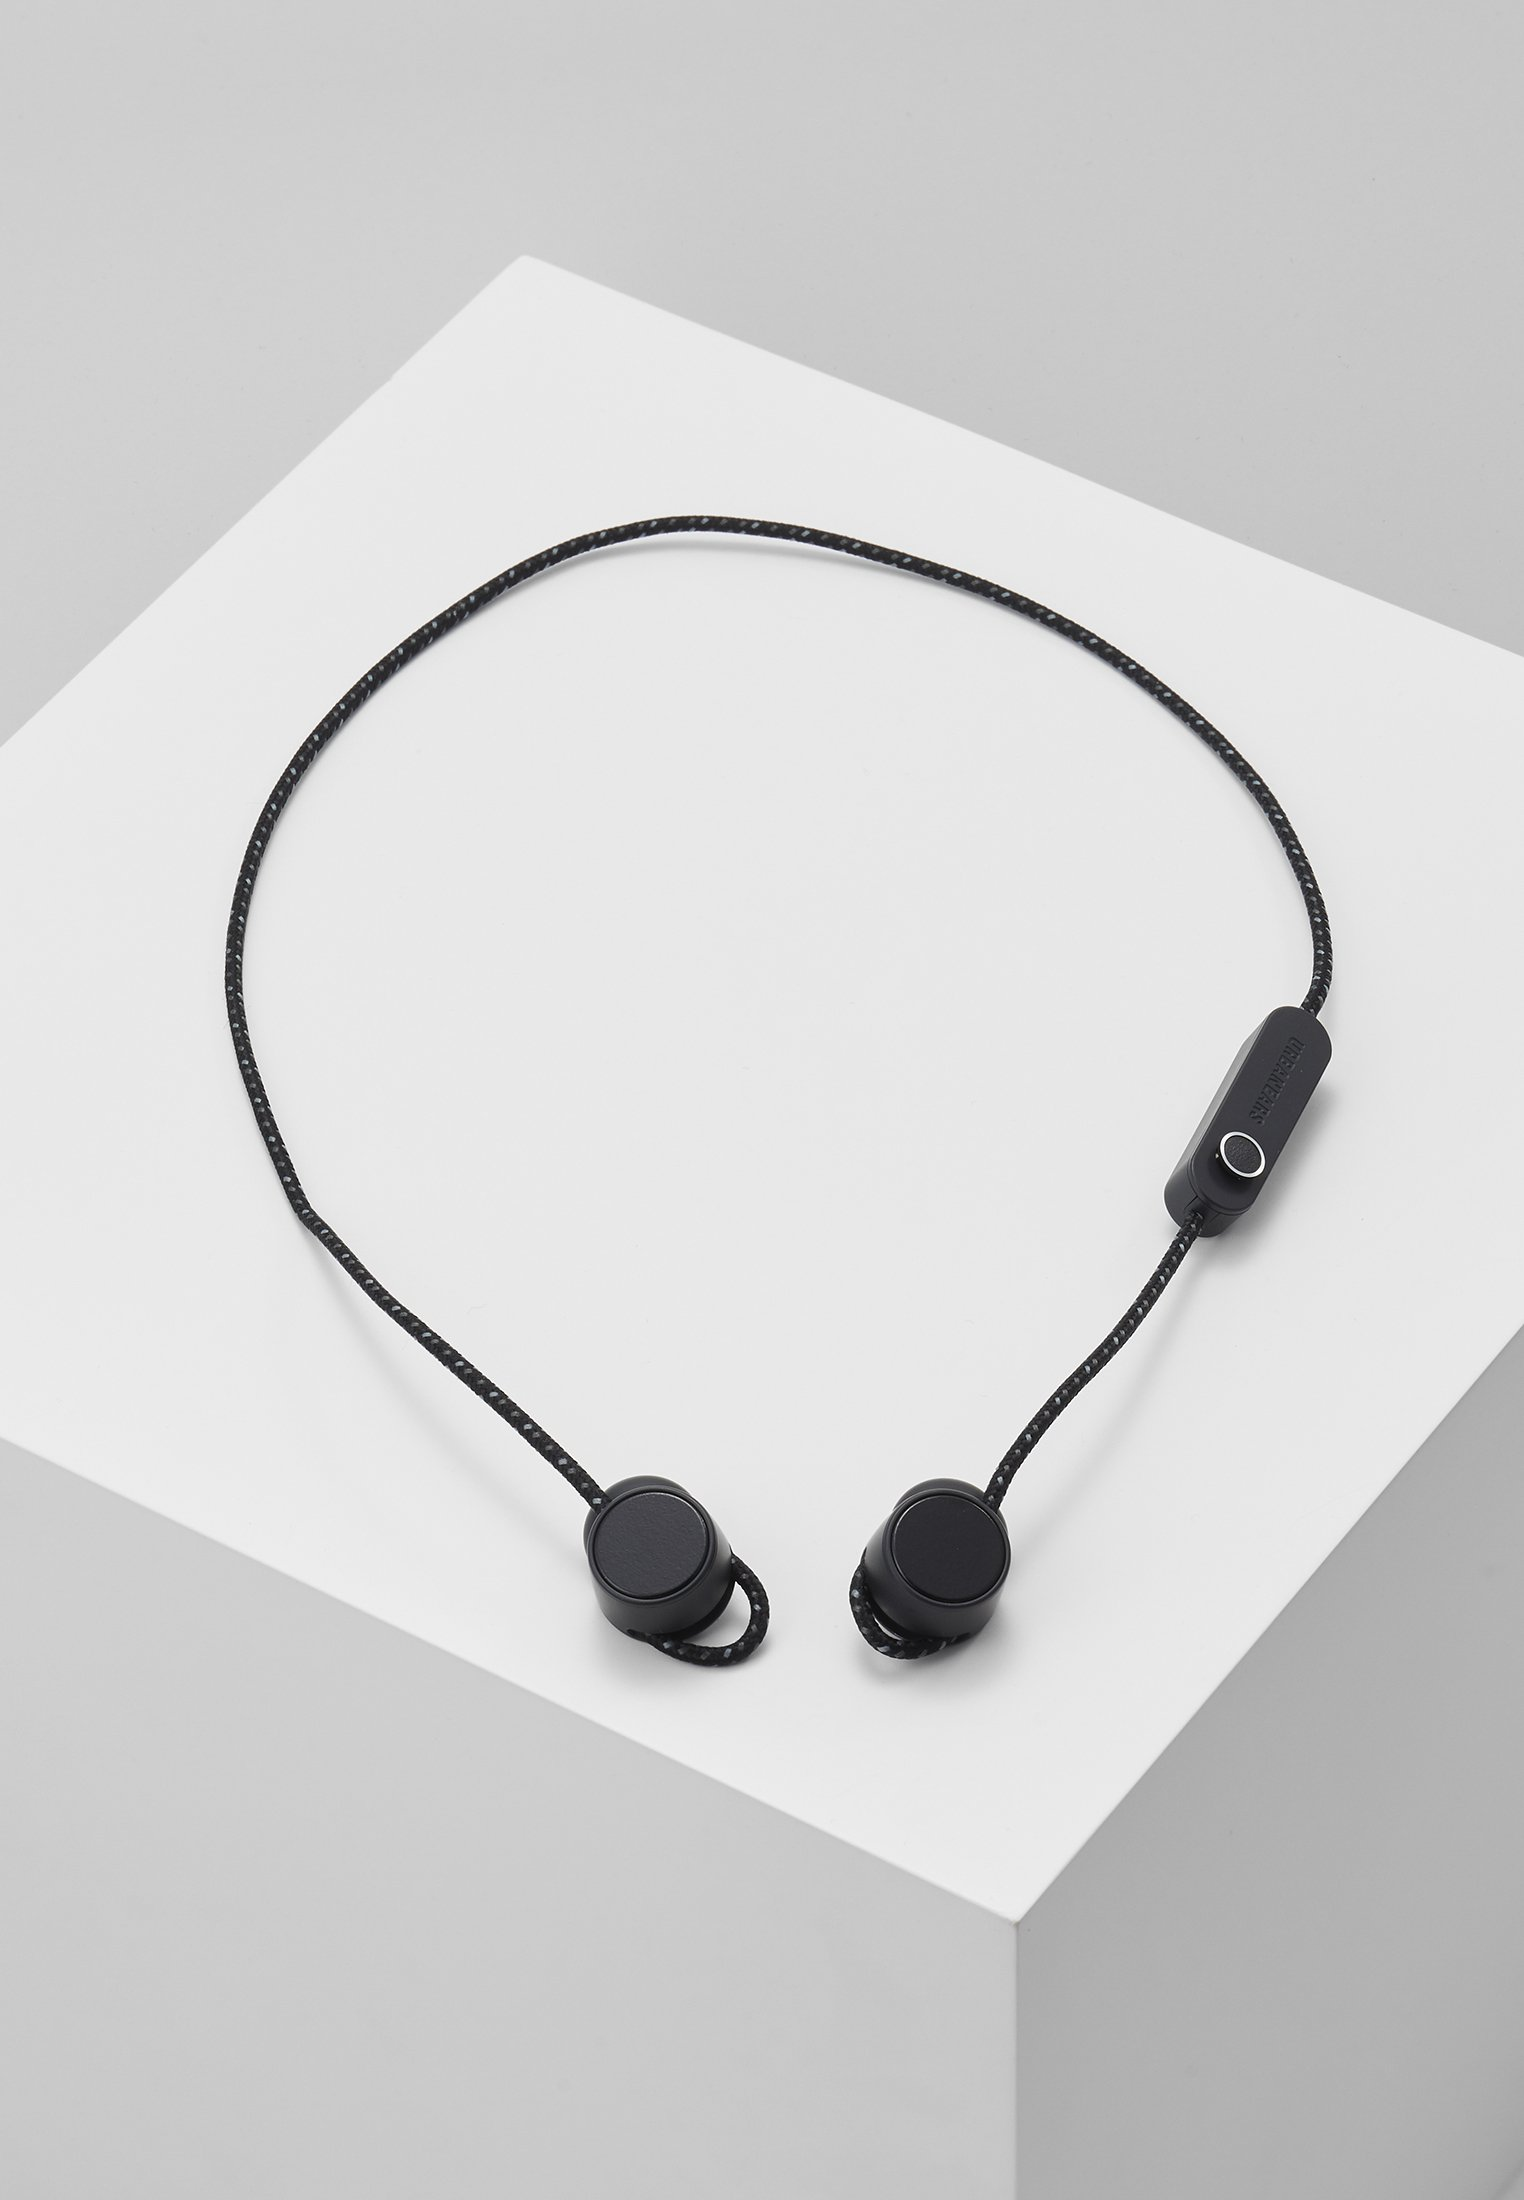 Buy Outlet Urbanears JAKAN - Headphones - charcoal black | women's accessories 2020 tnKKV